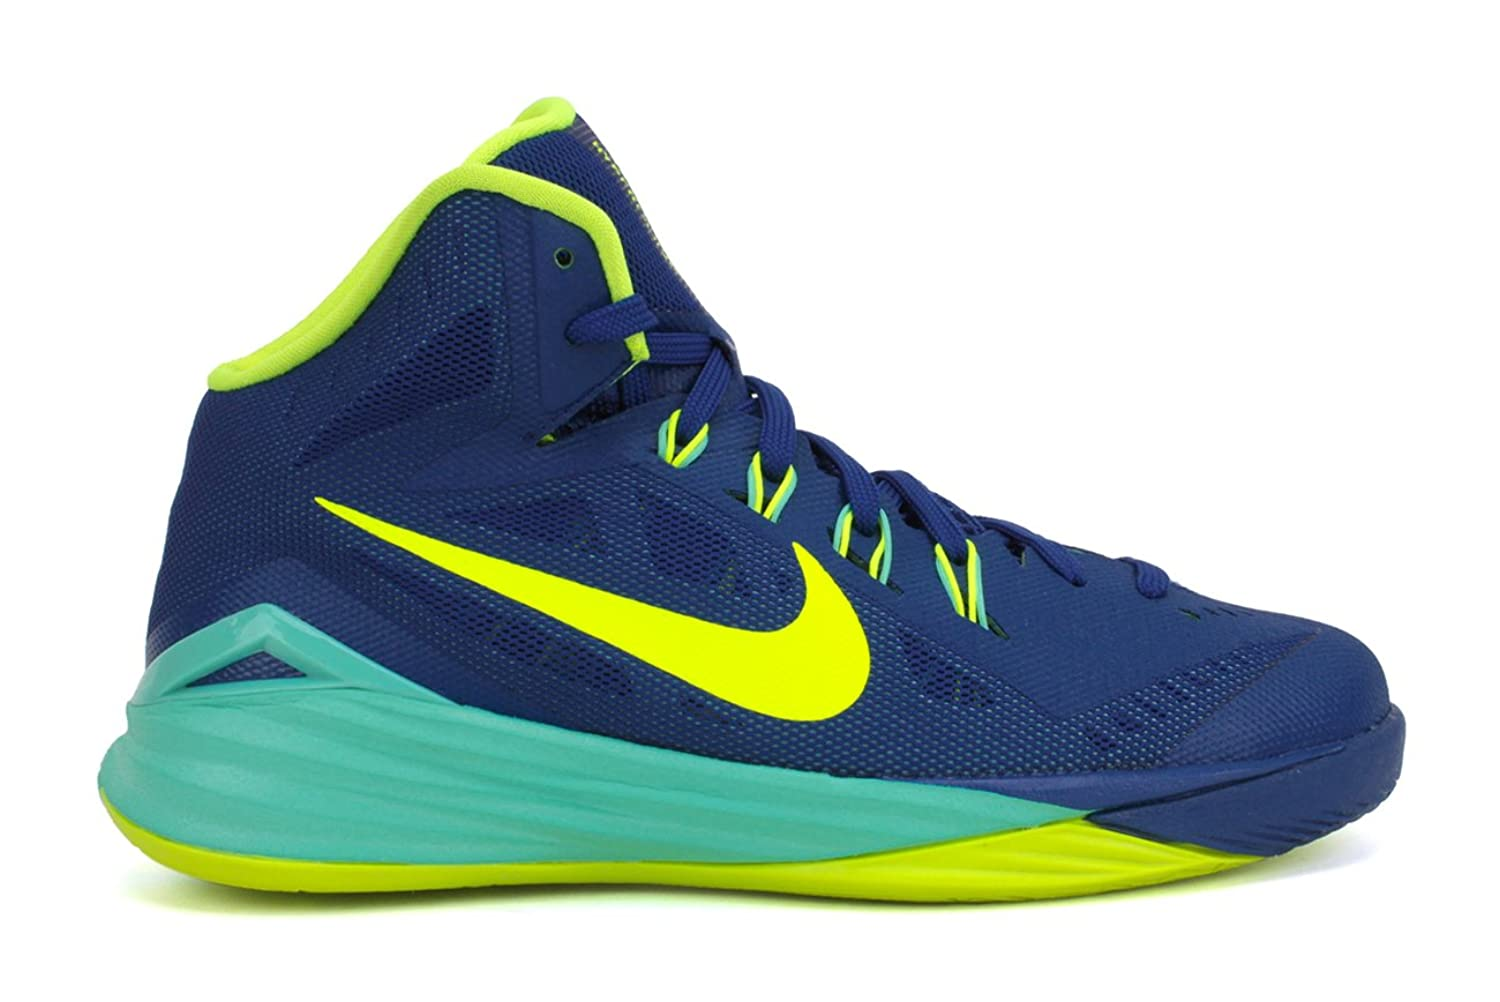 Amazon.com | Boy\u0027s Nike Hyperdunk 2014 Basketball Shoe Blue/Volt/Turquoise  Size 6 M US | Basketball